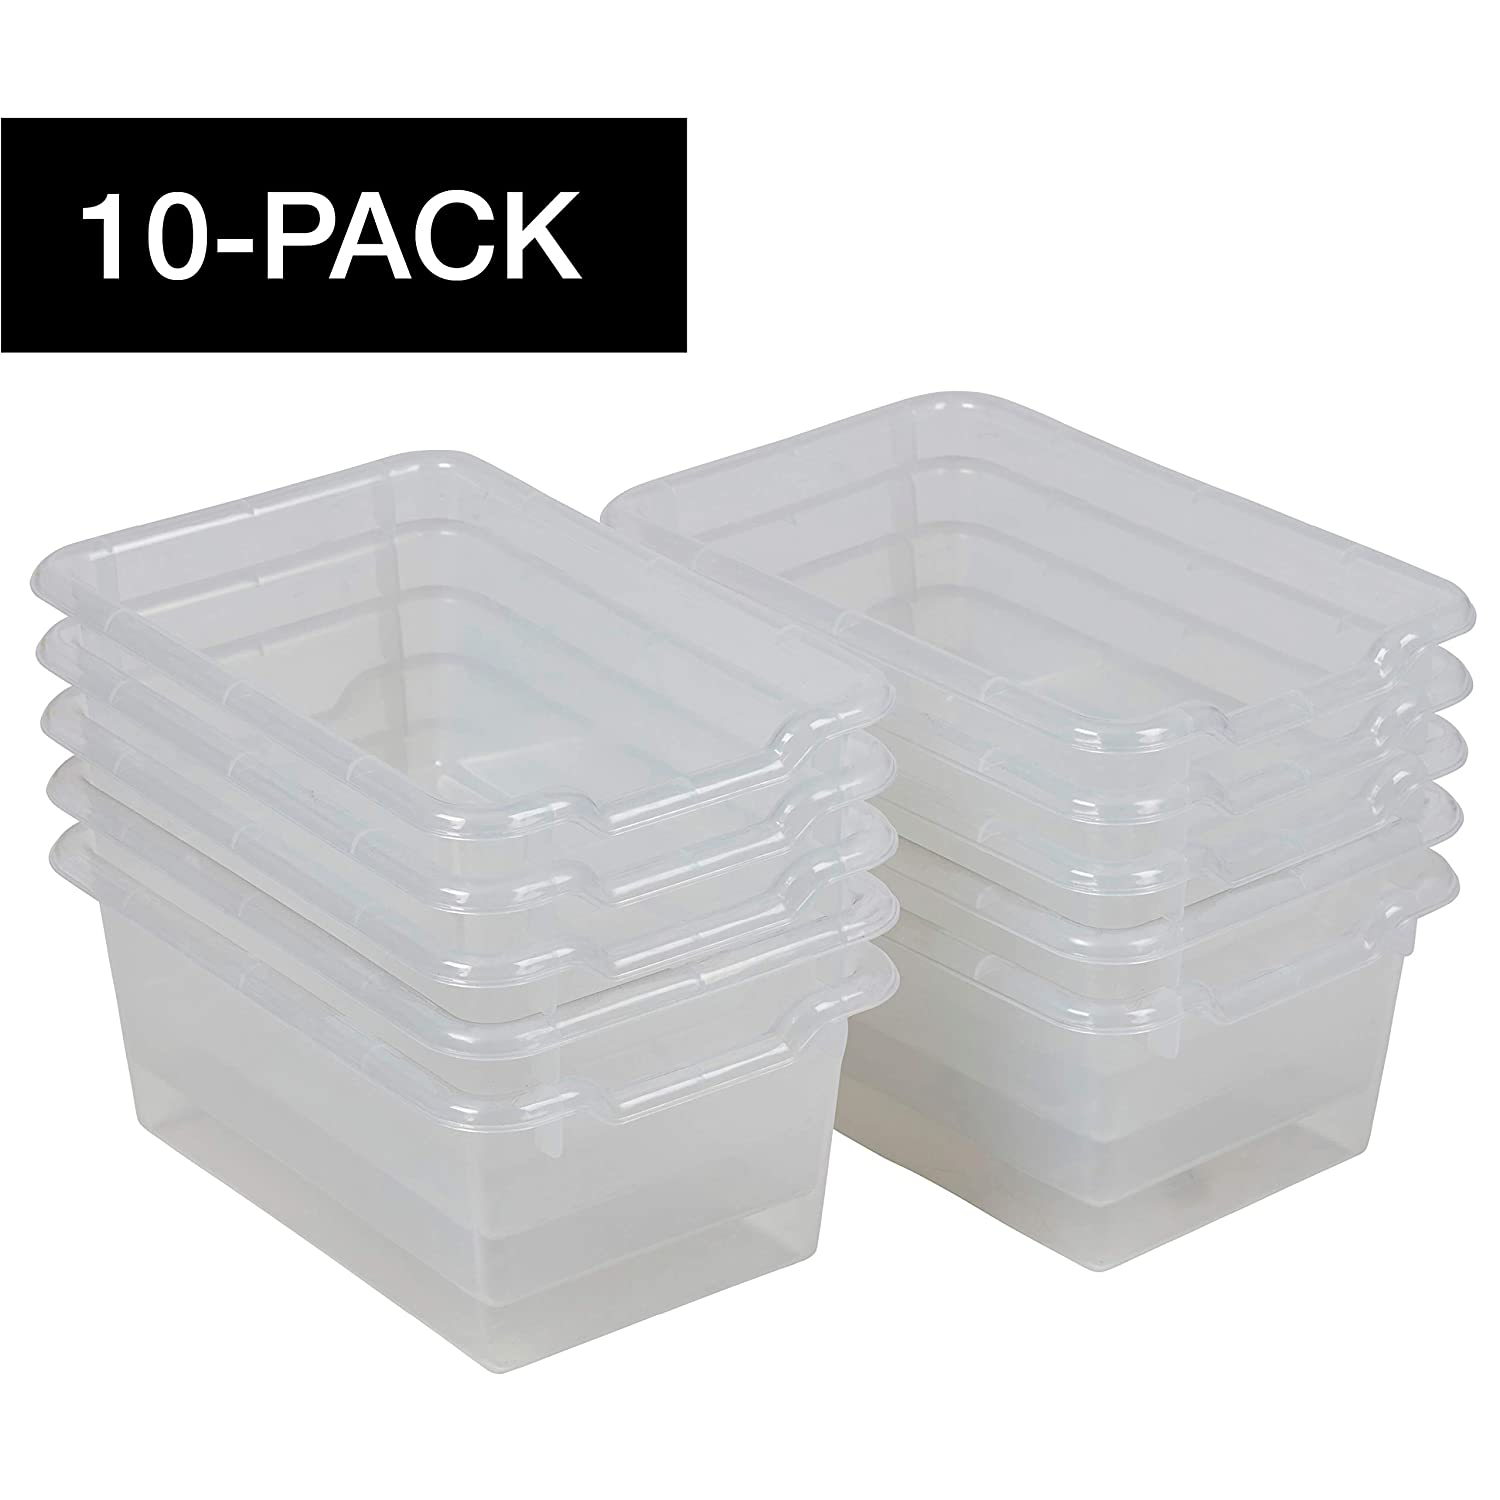 ECR4Kids Scoop-Front Storage Bins, Easy-to-Grip Design Storage Cubbies, Kid Friendly and Built to Last, Pairs with ECR4Kids Storage Units, 10-Pack, Clear